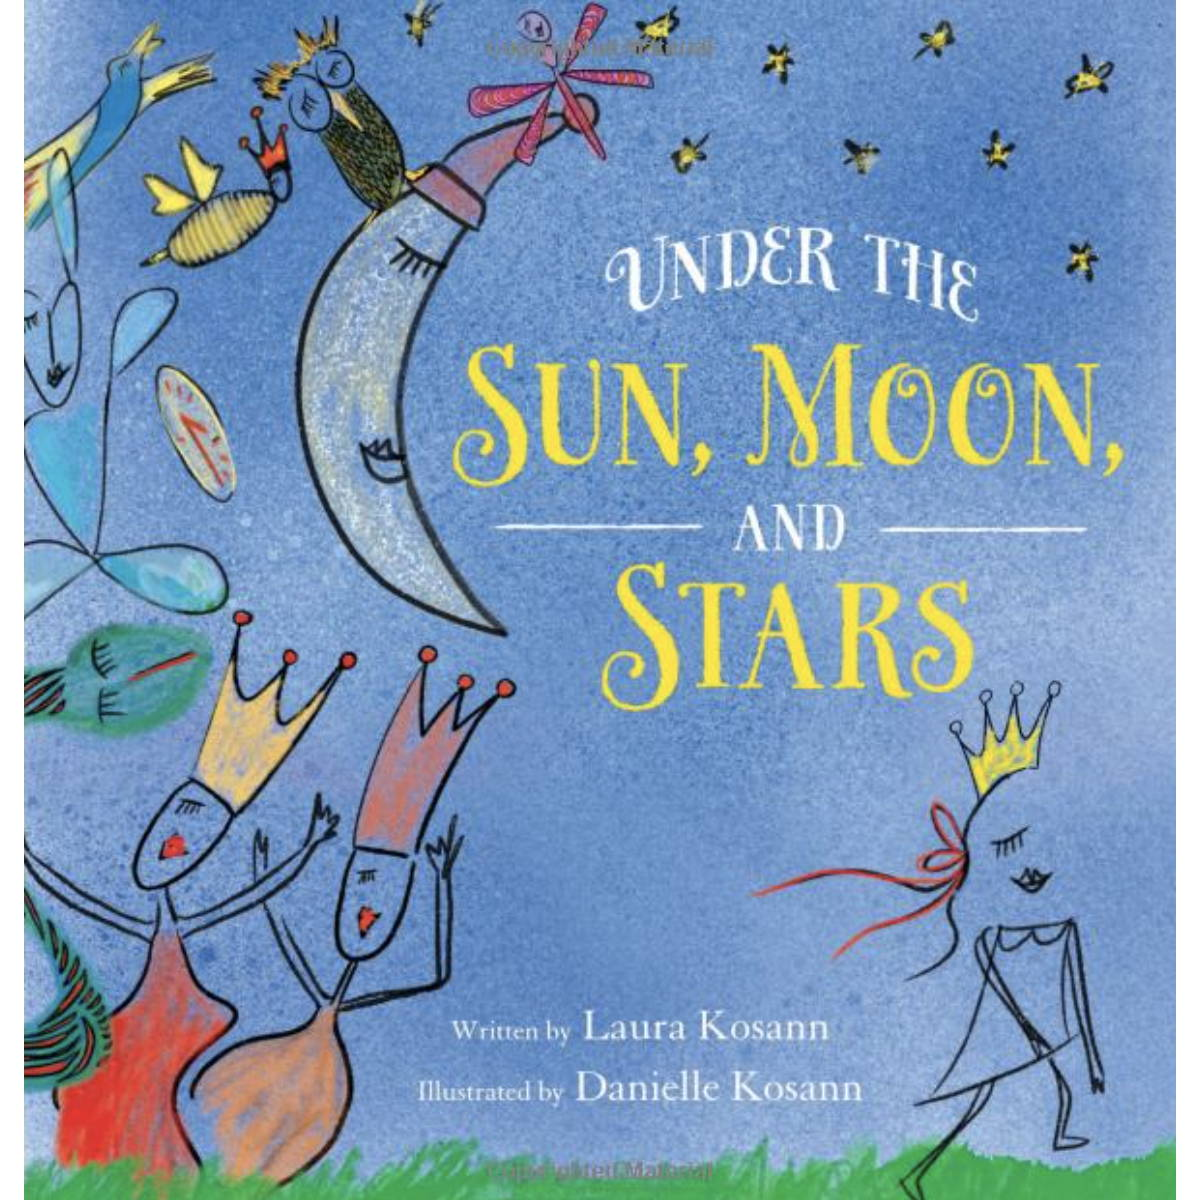 Under the sun moon and stars book